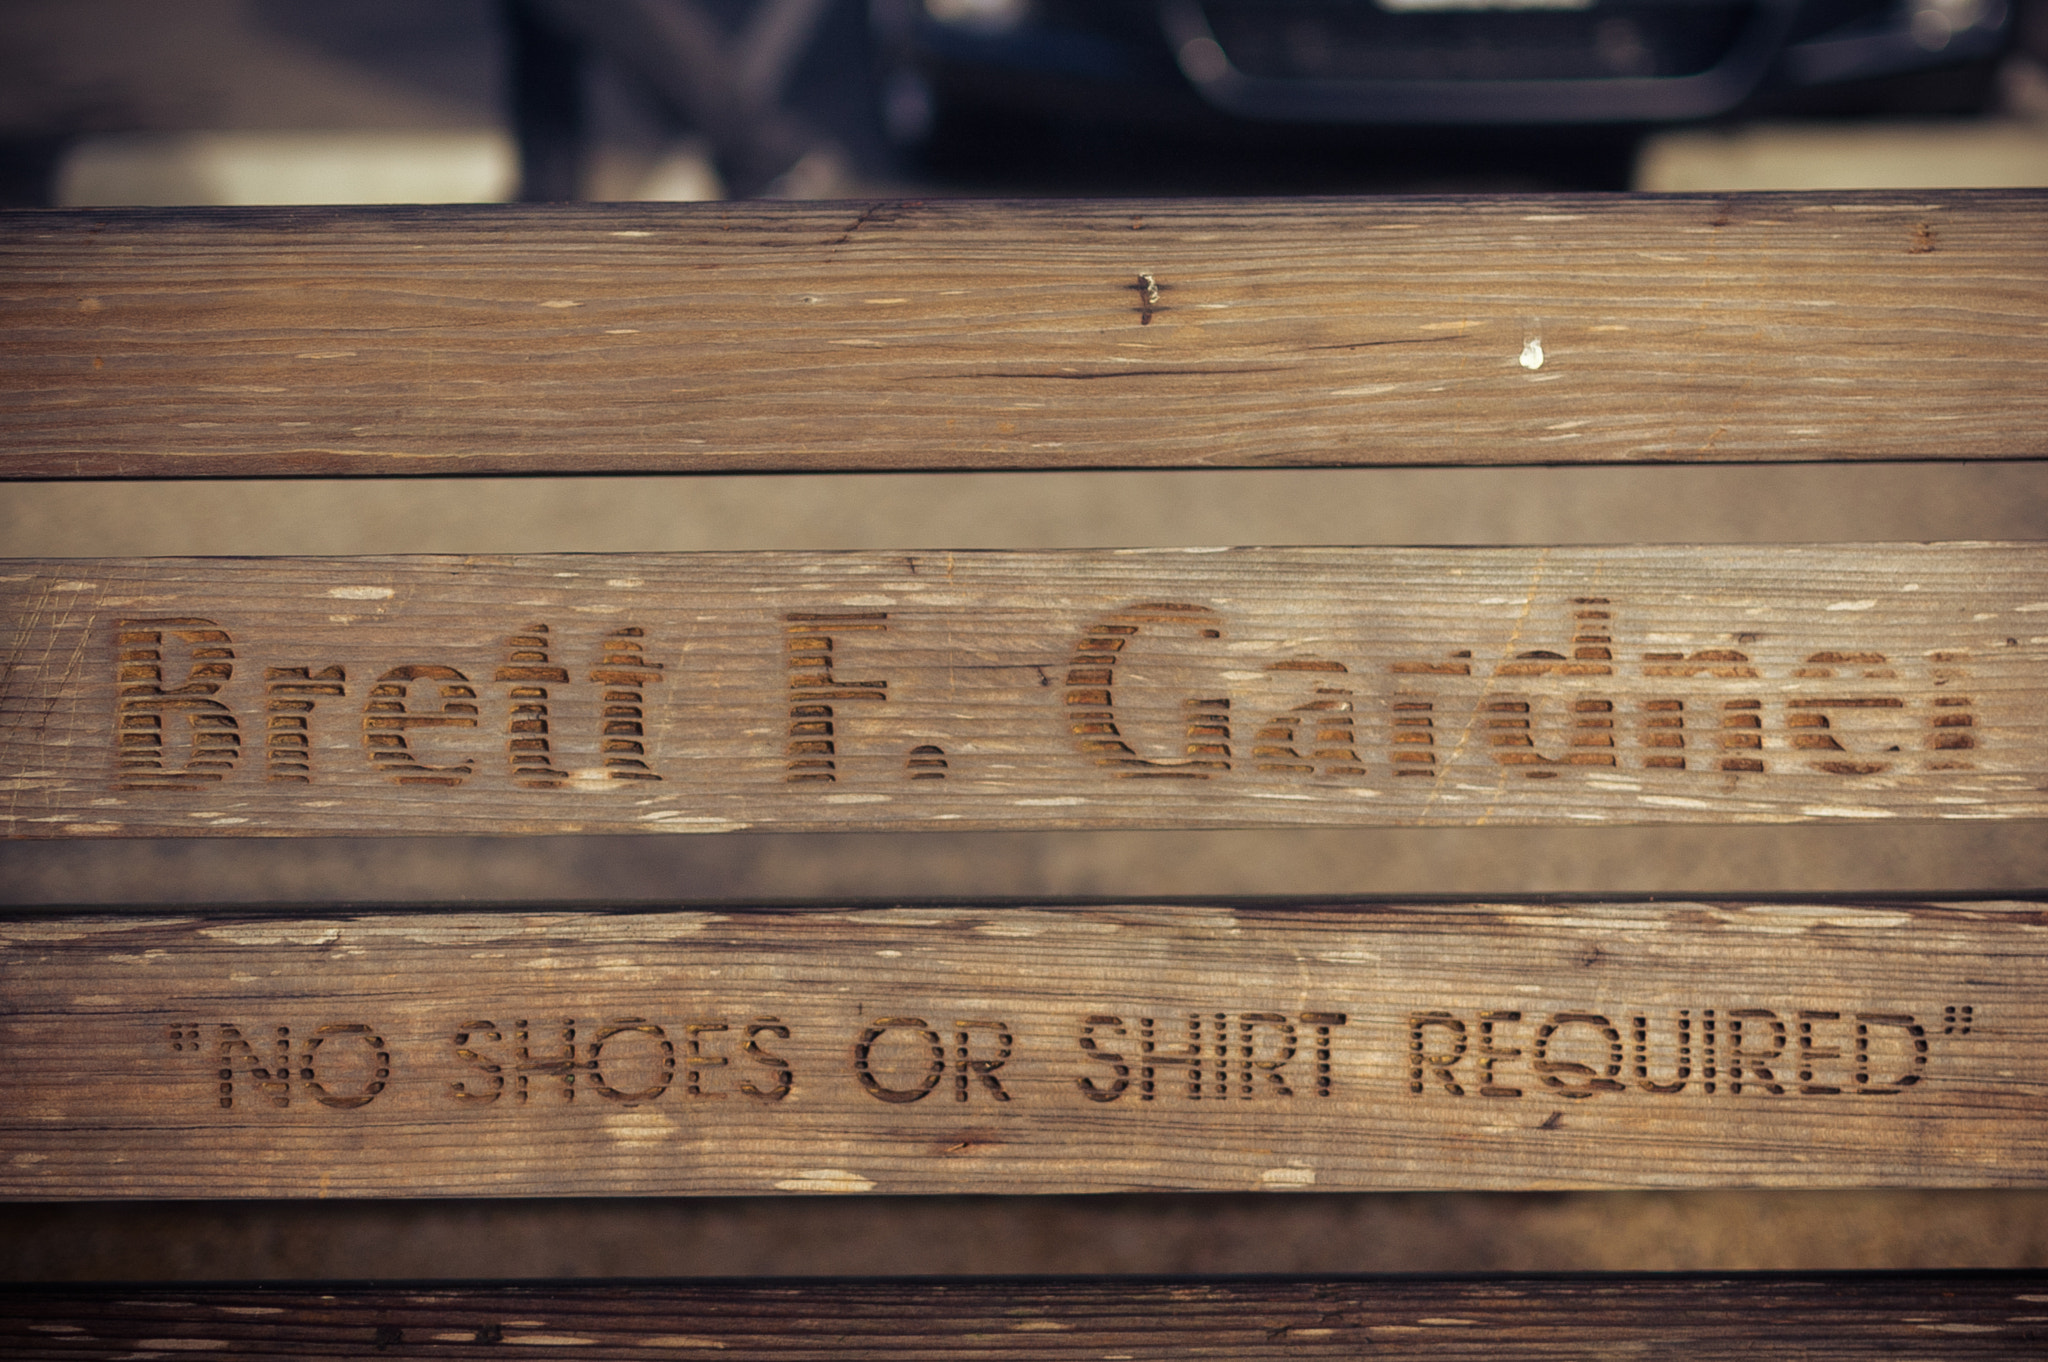 Photograph No Shirts or Shoes Required by Pratik  on 500px